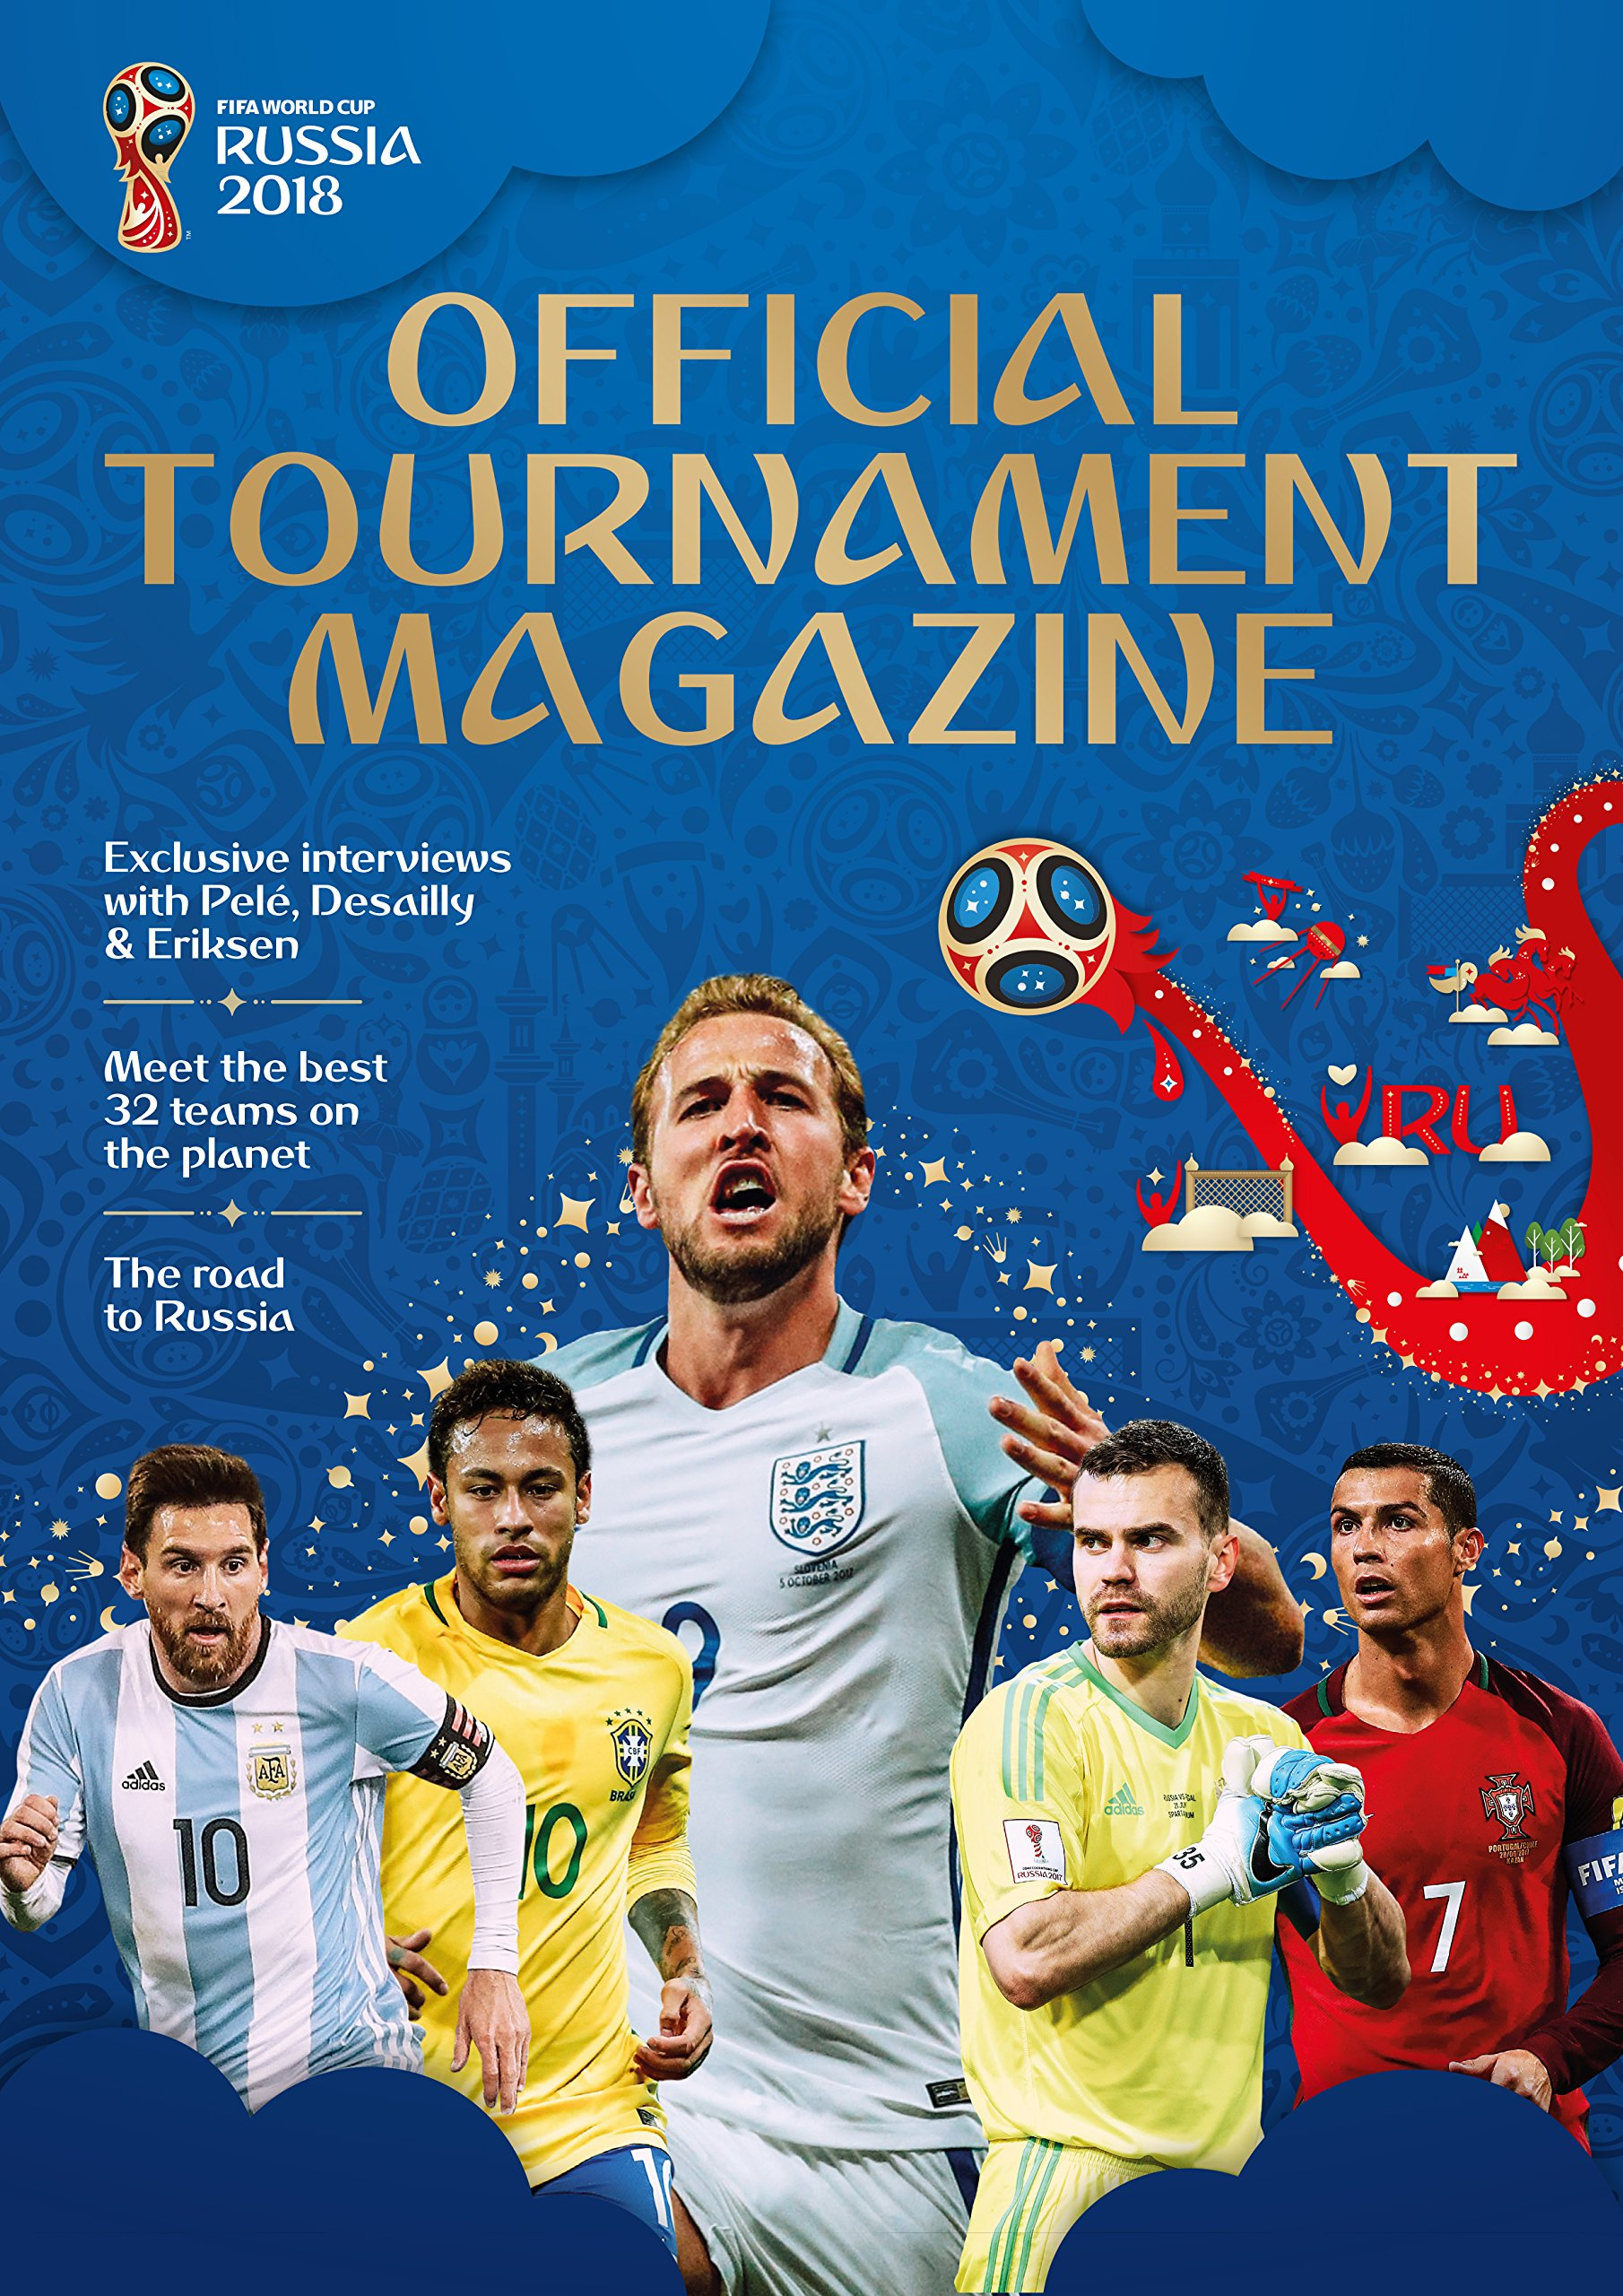 ba5919998 2018 FIFA World Cup Russia™ Official Tournament Magazine Paperback – 12 Apr  2018